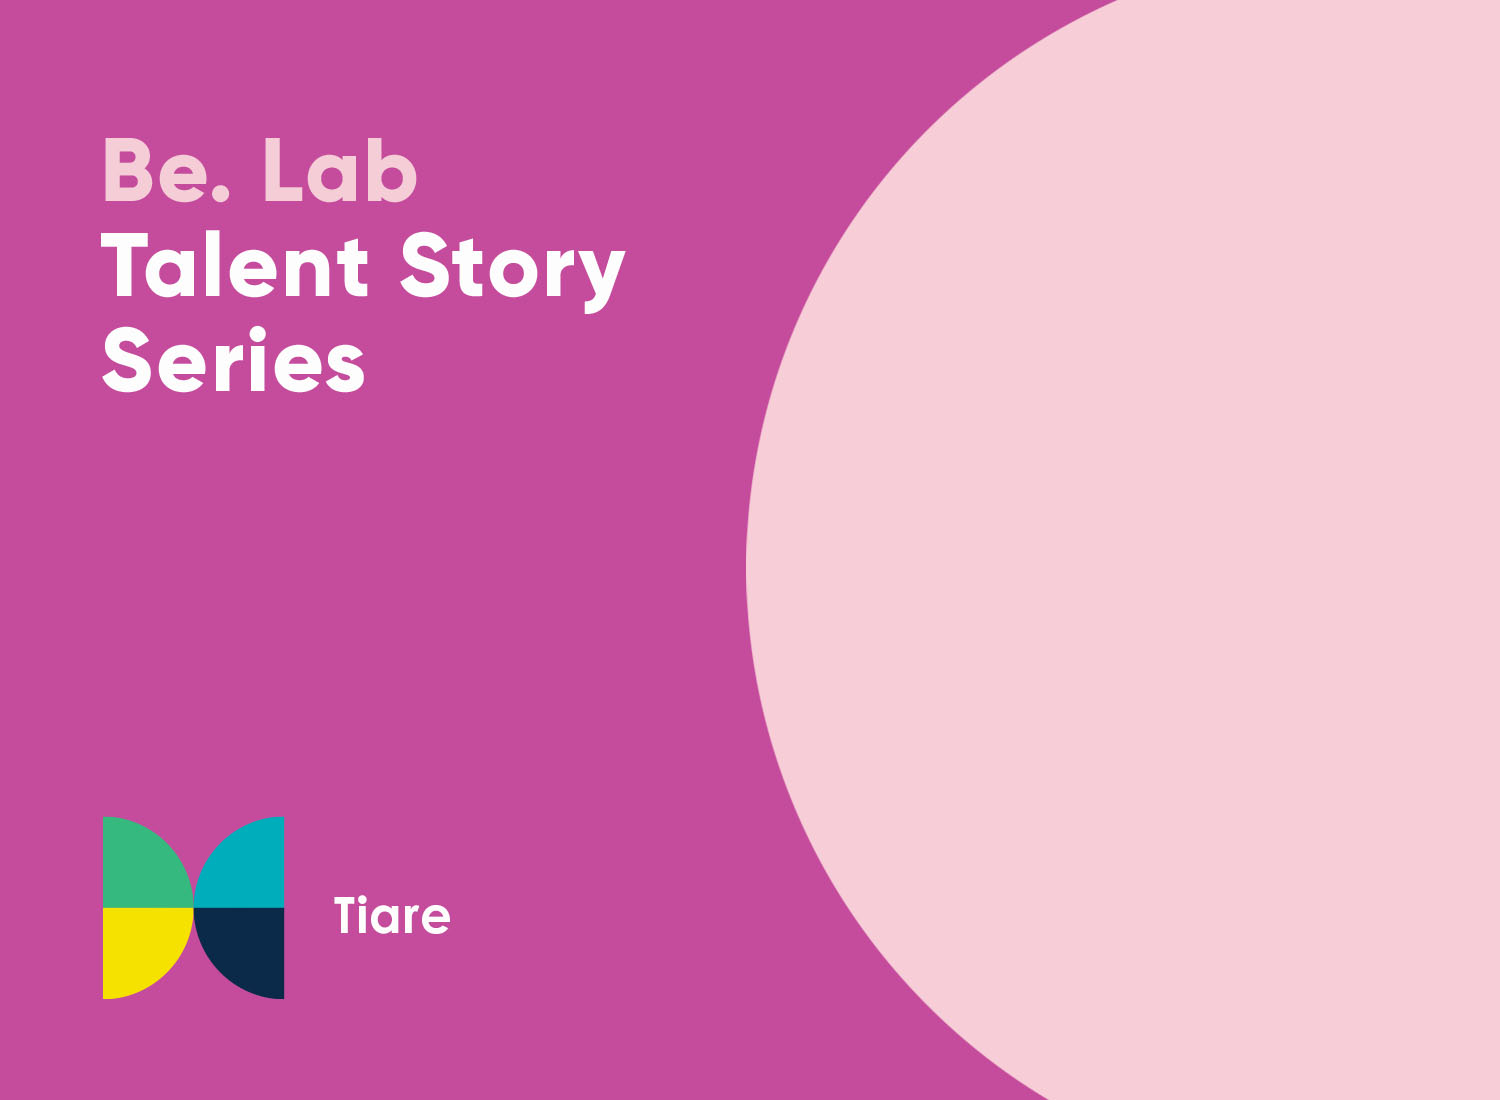 Fuchsia background with the words Be. Lab Talent Story Series: Tiare